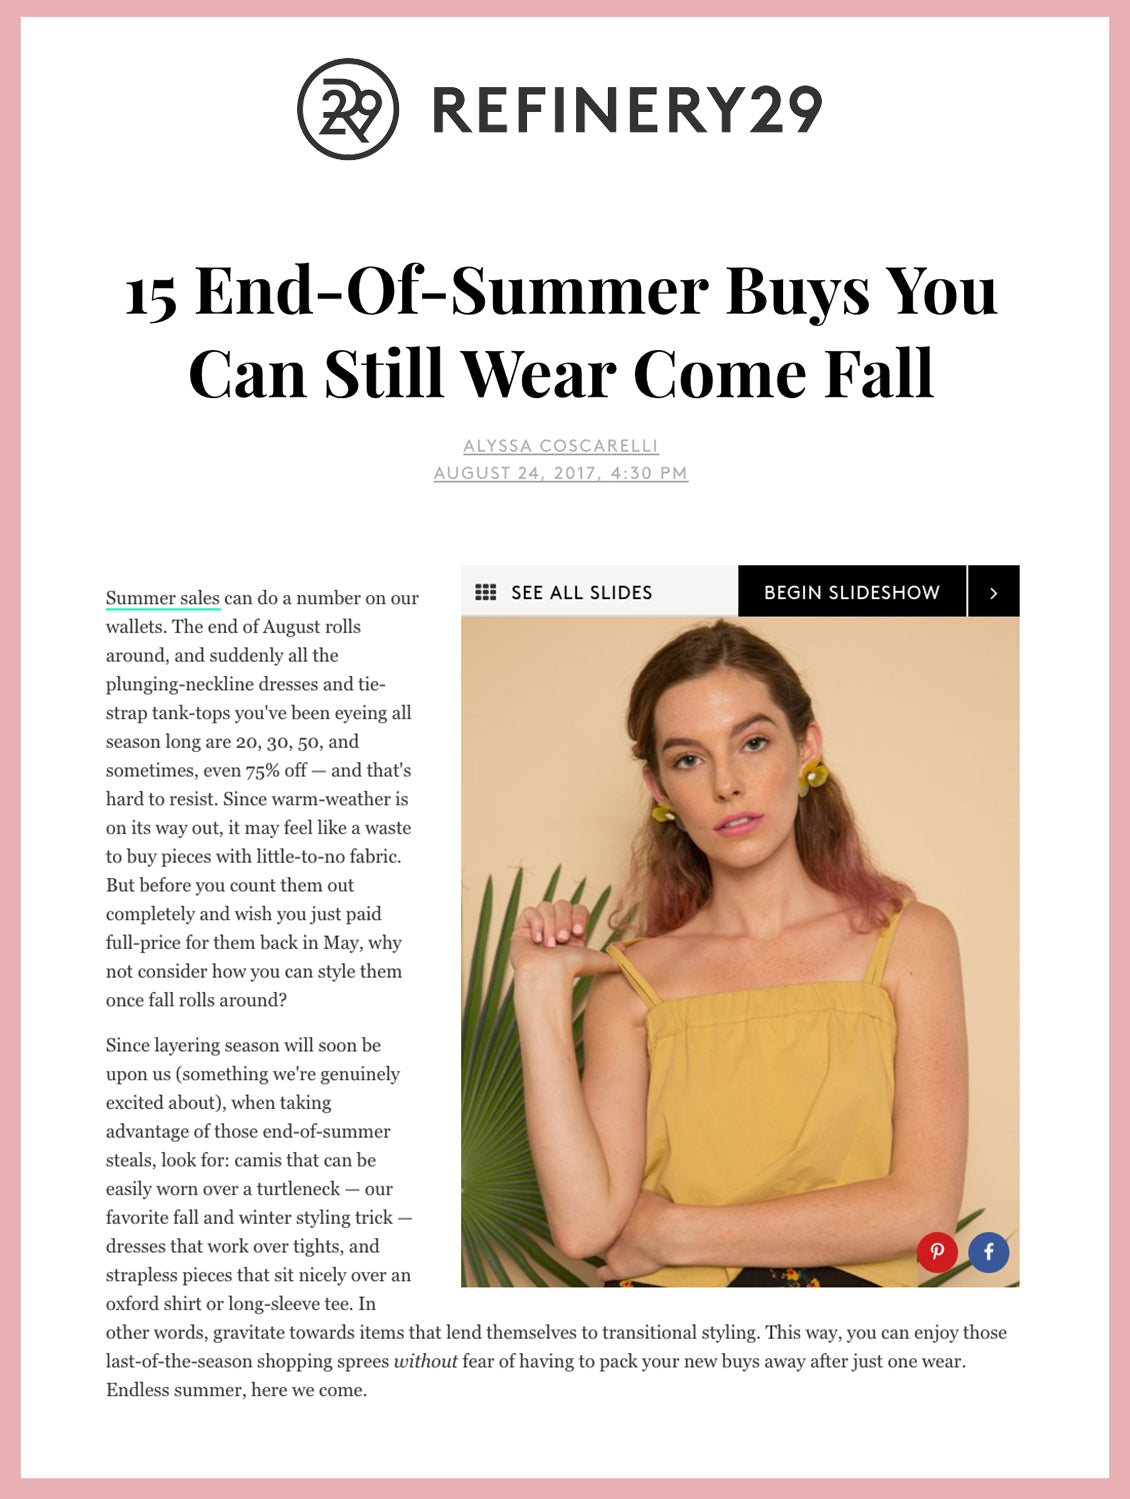 15 End-Of-Summer Buys You Can Still Wear Come Fall